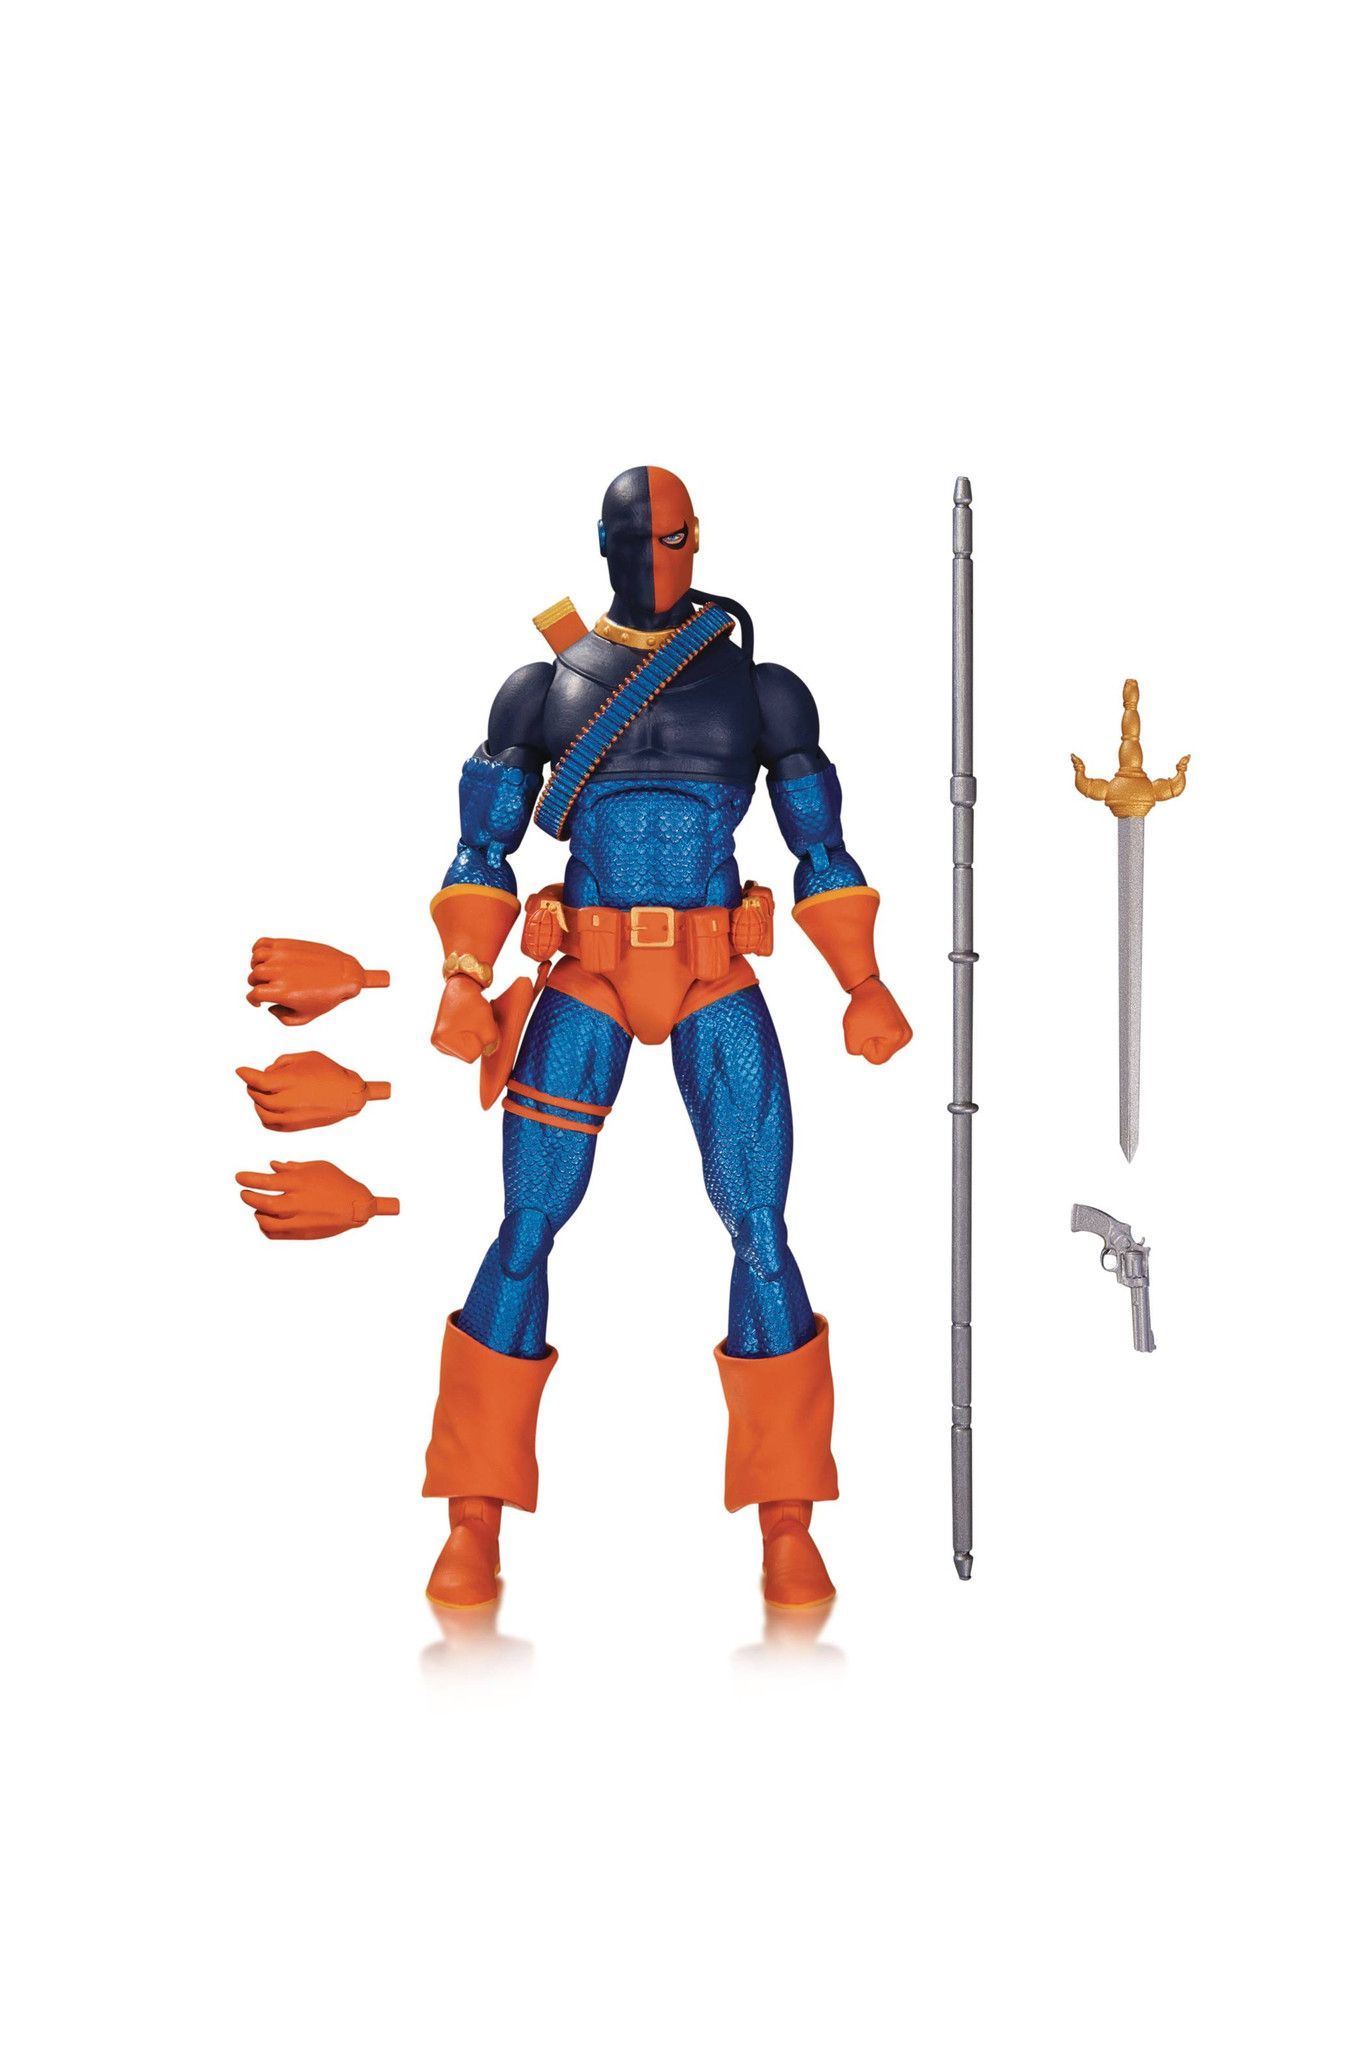 DC ICONS DEATHSTROKE AF Deathstroke, Dc icons, Dc comics